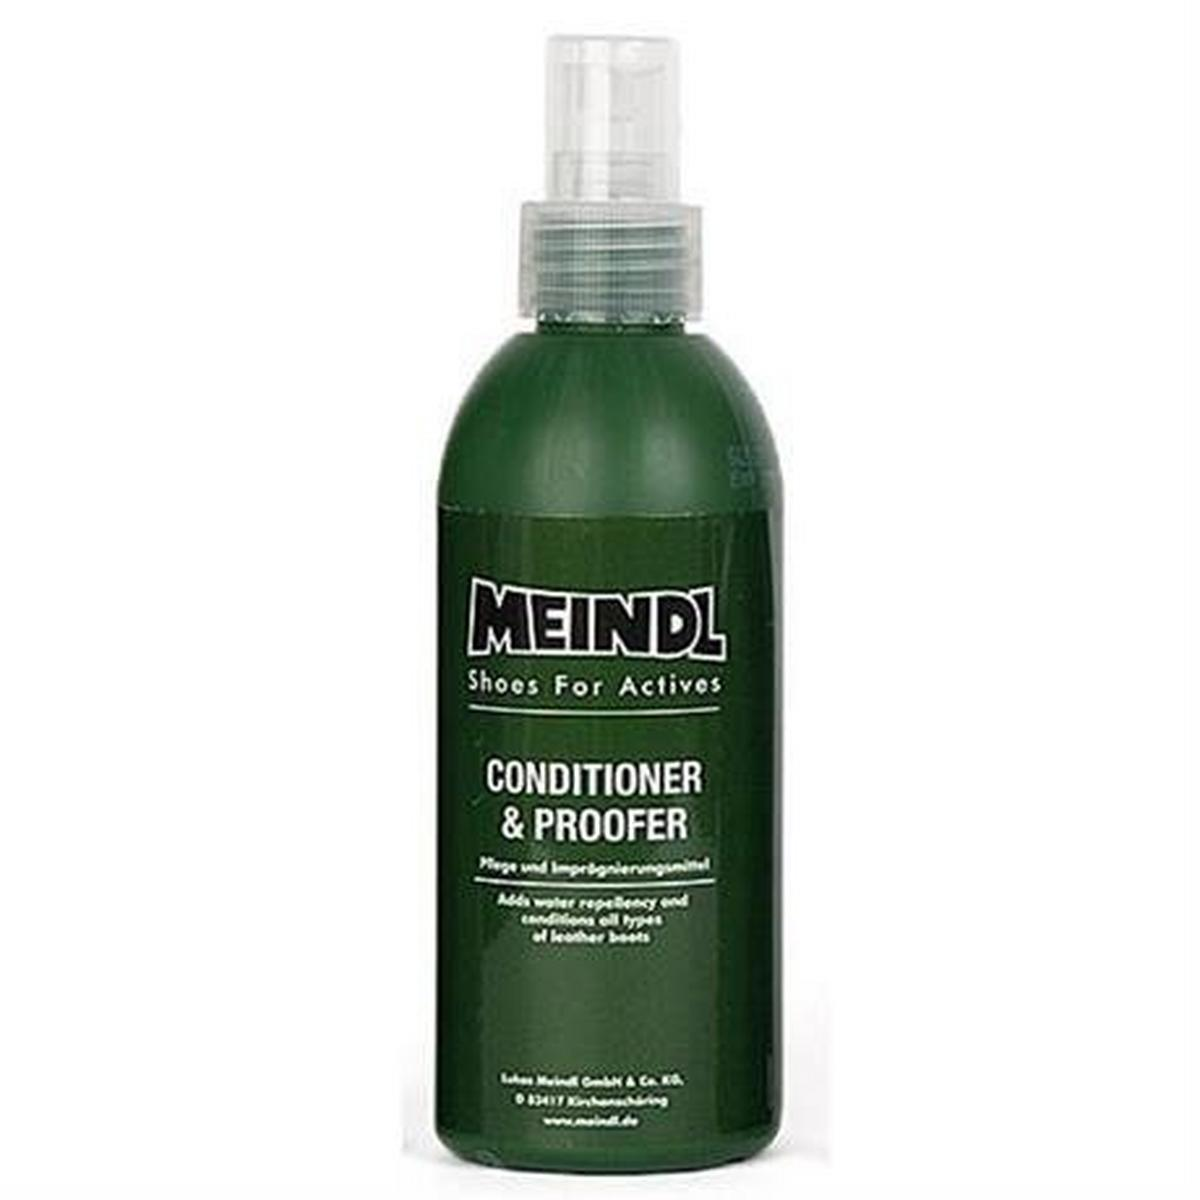 Meindl Shoe & Boot Care: Conditioner and Proofer